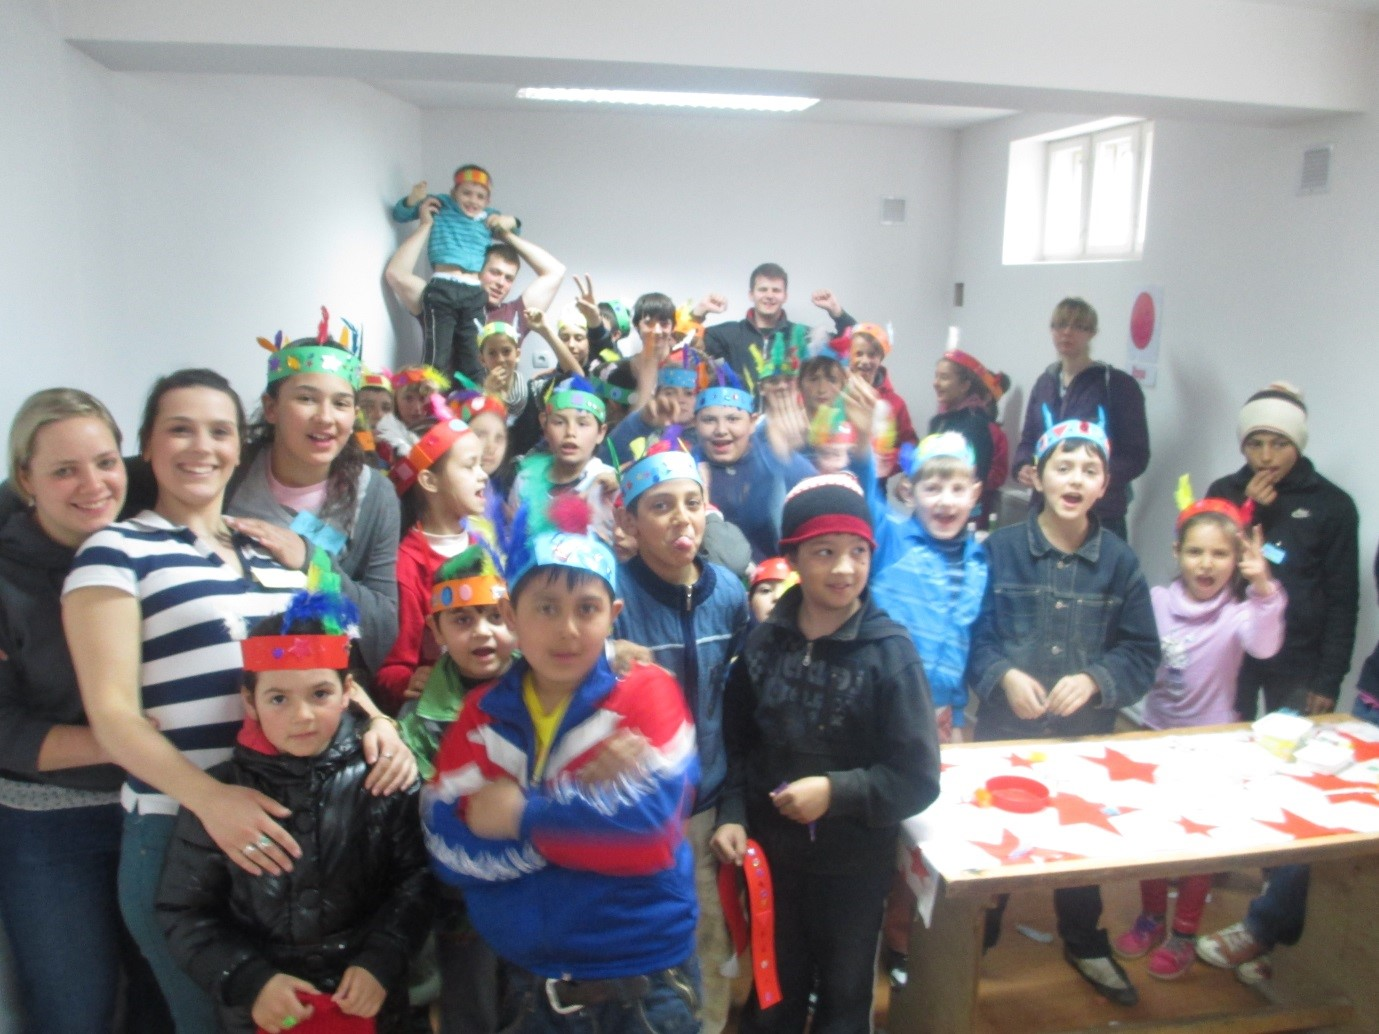 Craft at the children's programme during the Spring mission